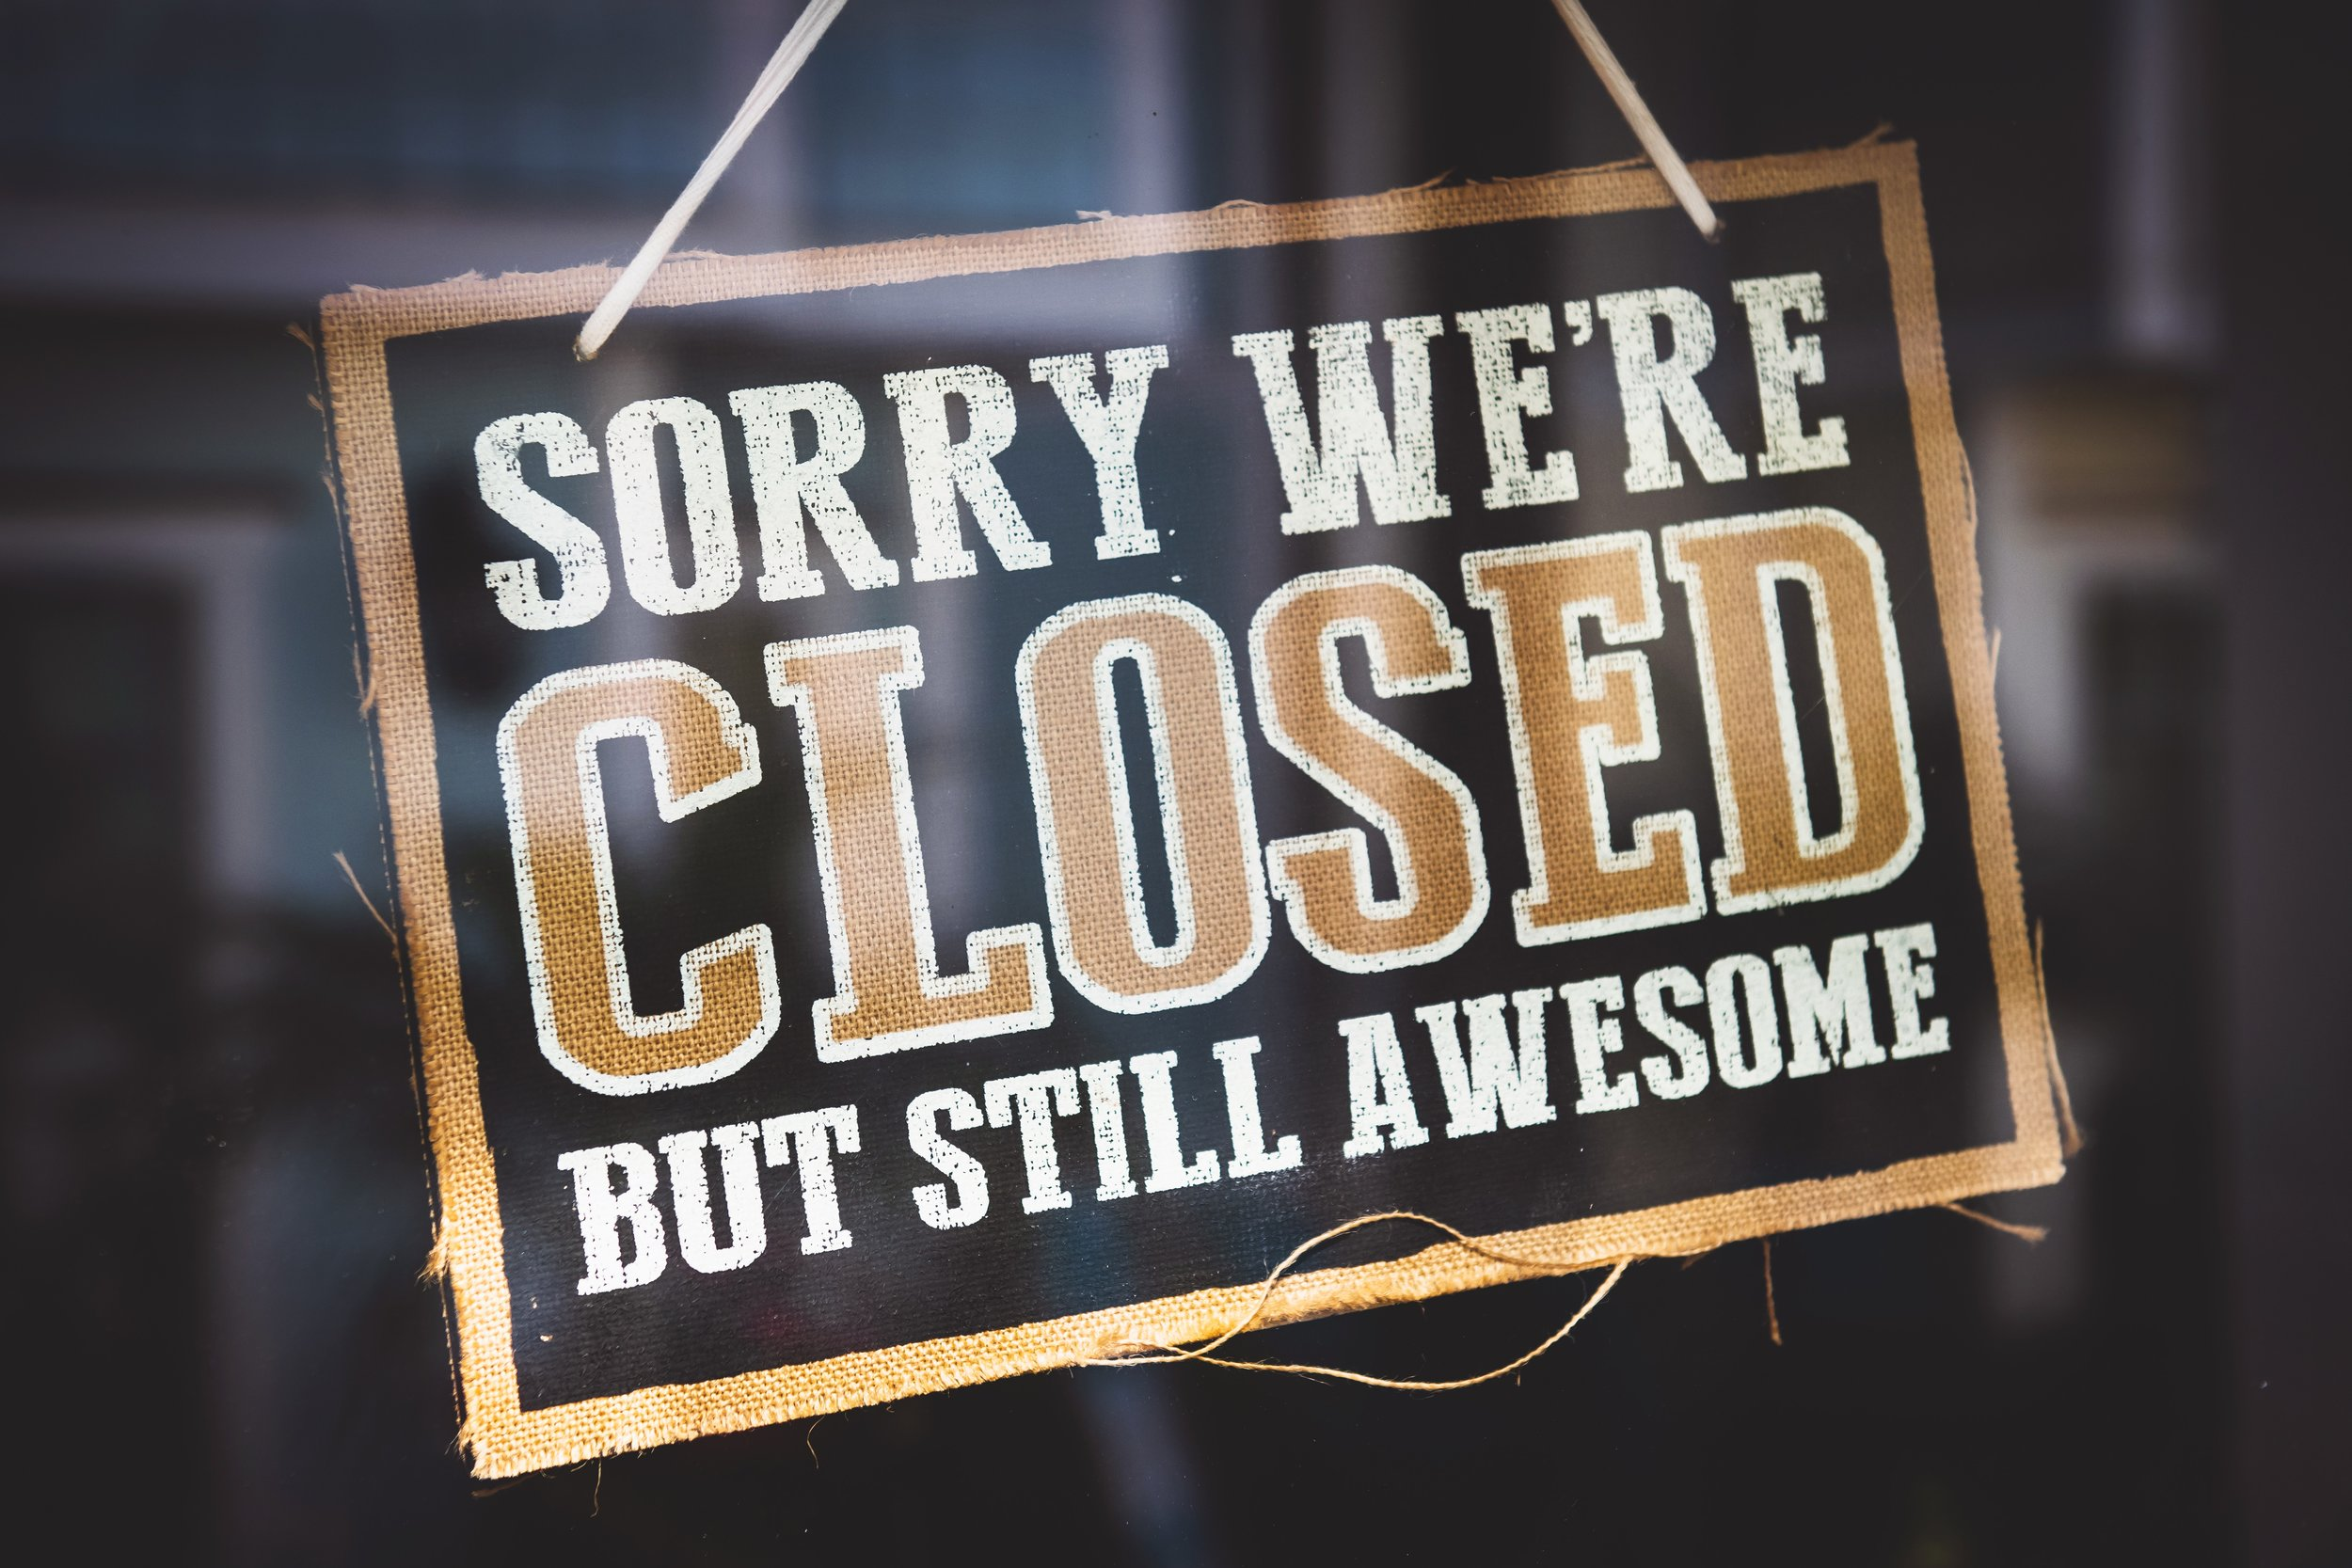 awesome-business-closed-1101720.jpg